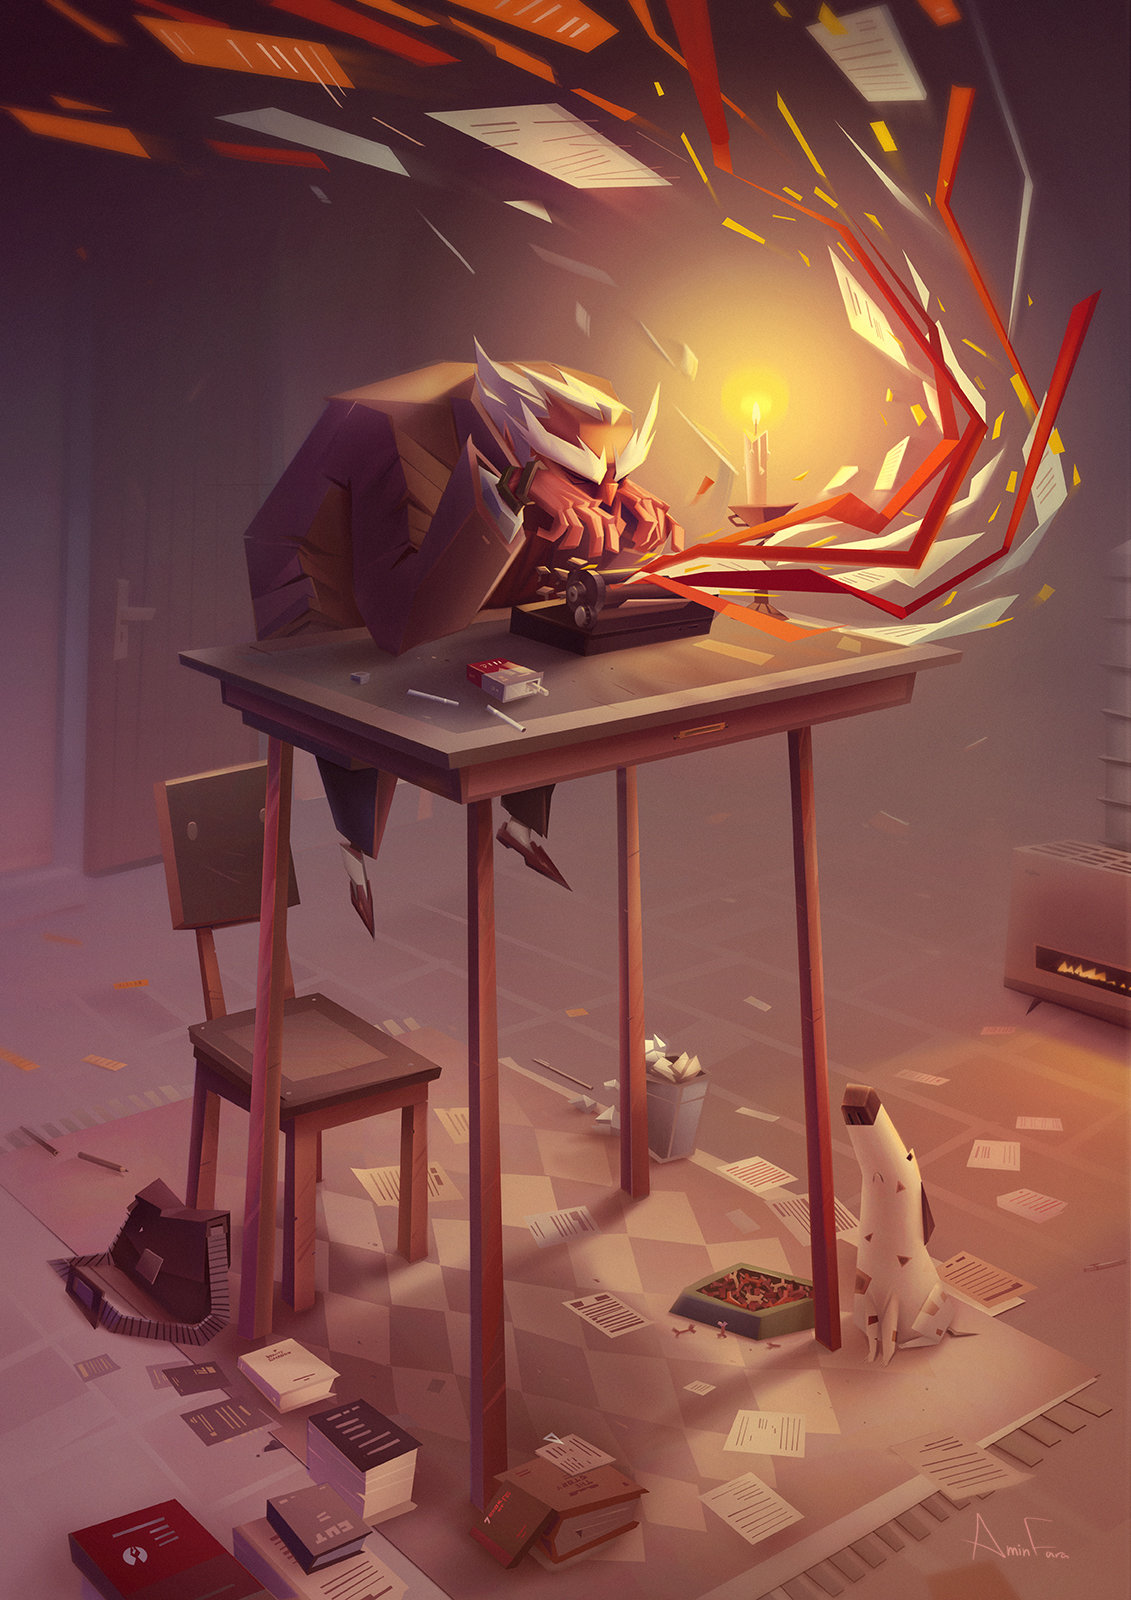 ArtStation - Writers Write, Amin Faramarzian